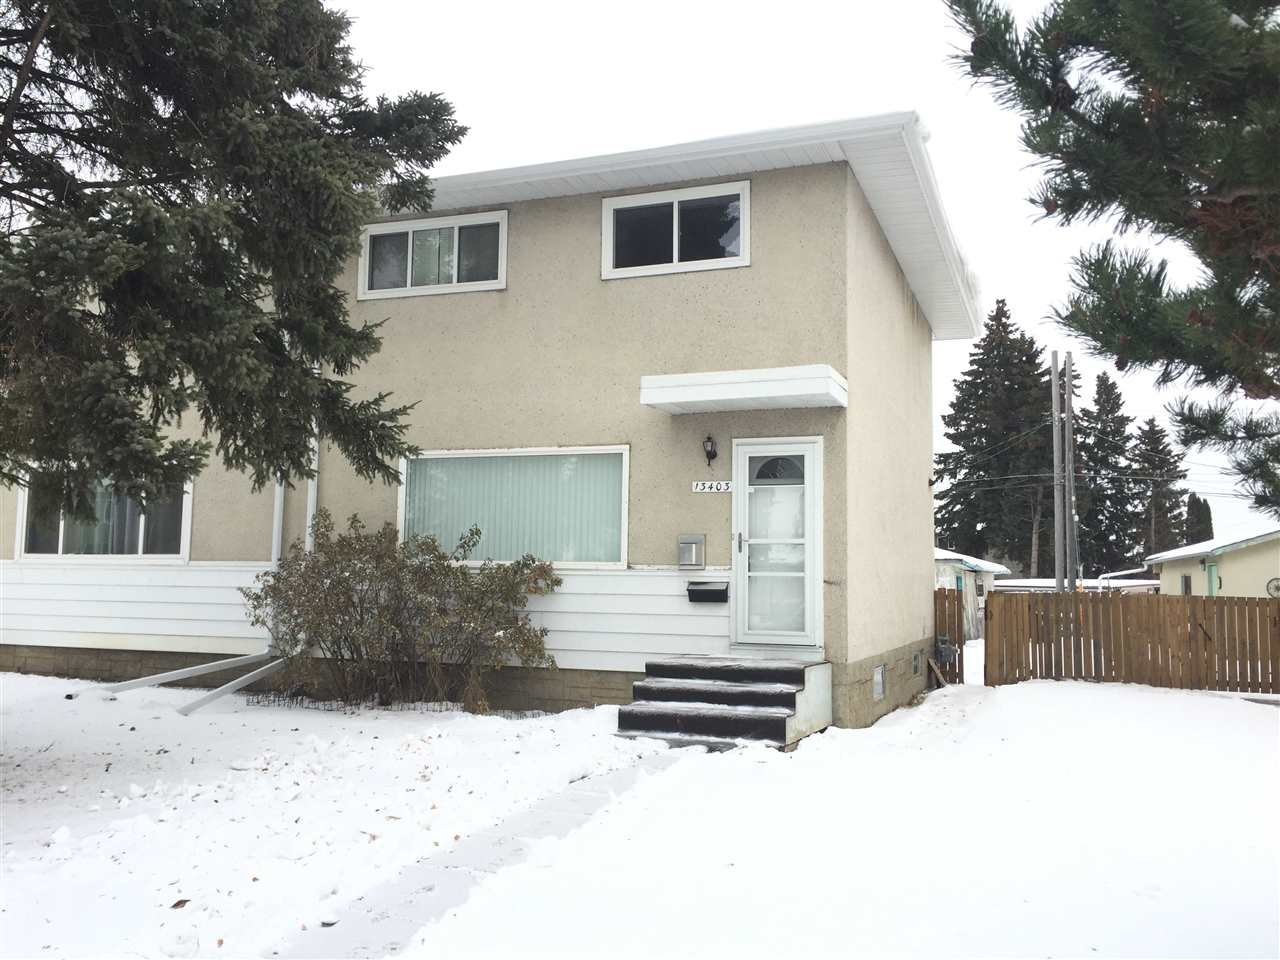 FEATURED LISTING: 13403 122 Street Edmonton